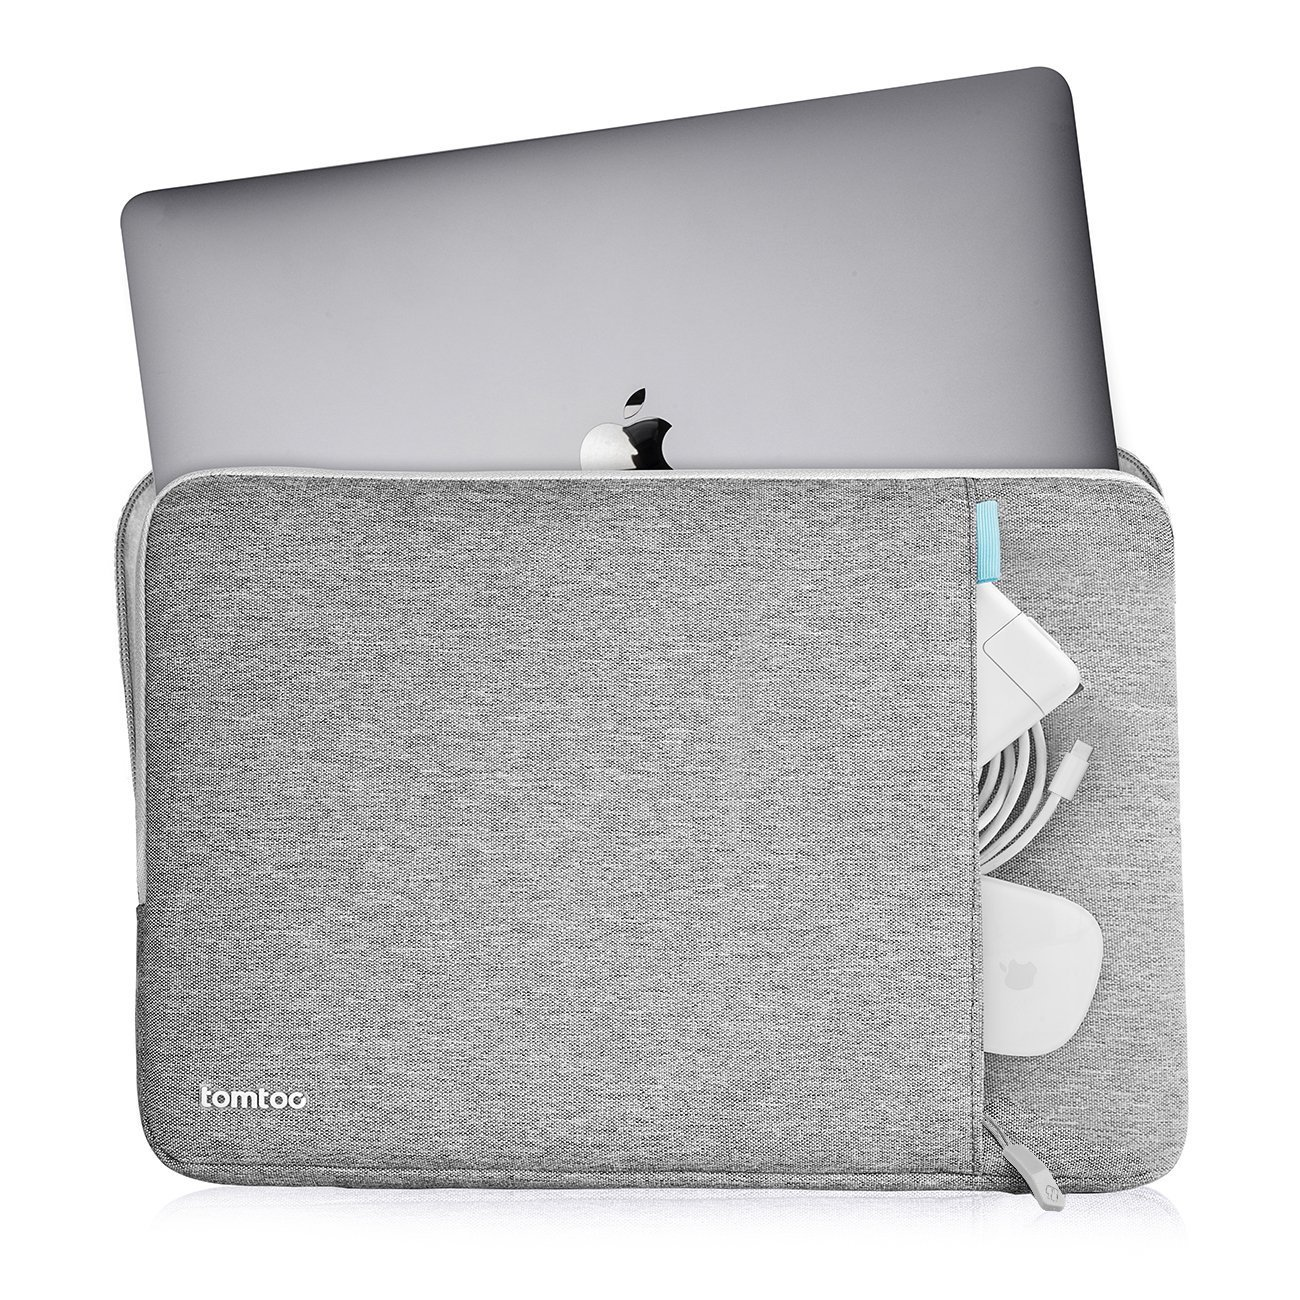 tomtoc 360 Protective Laptop Sleeve Case for 13inch New MacBook Air with Retina Display A1932 A2179